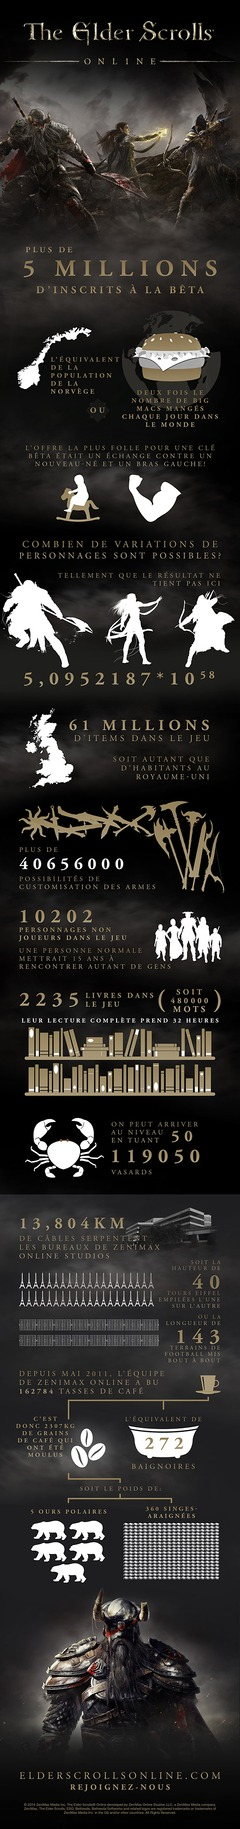 The-Elder-Scrolls-Online-infographic_Frenchb.jpg